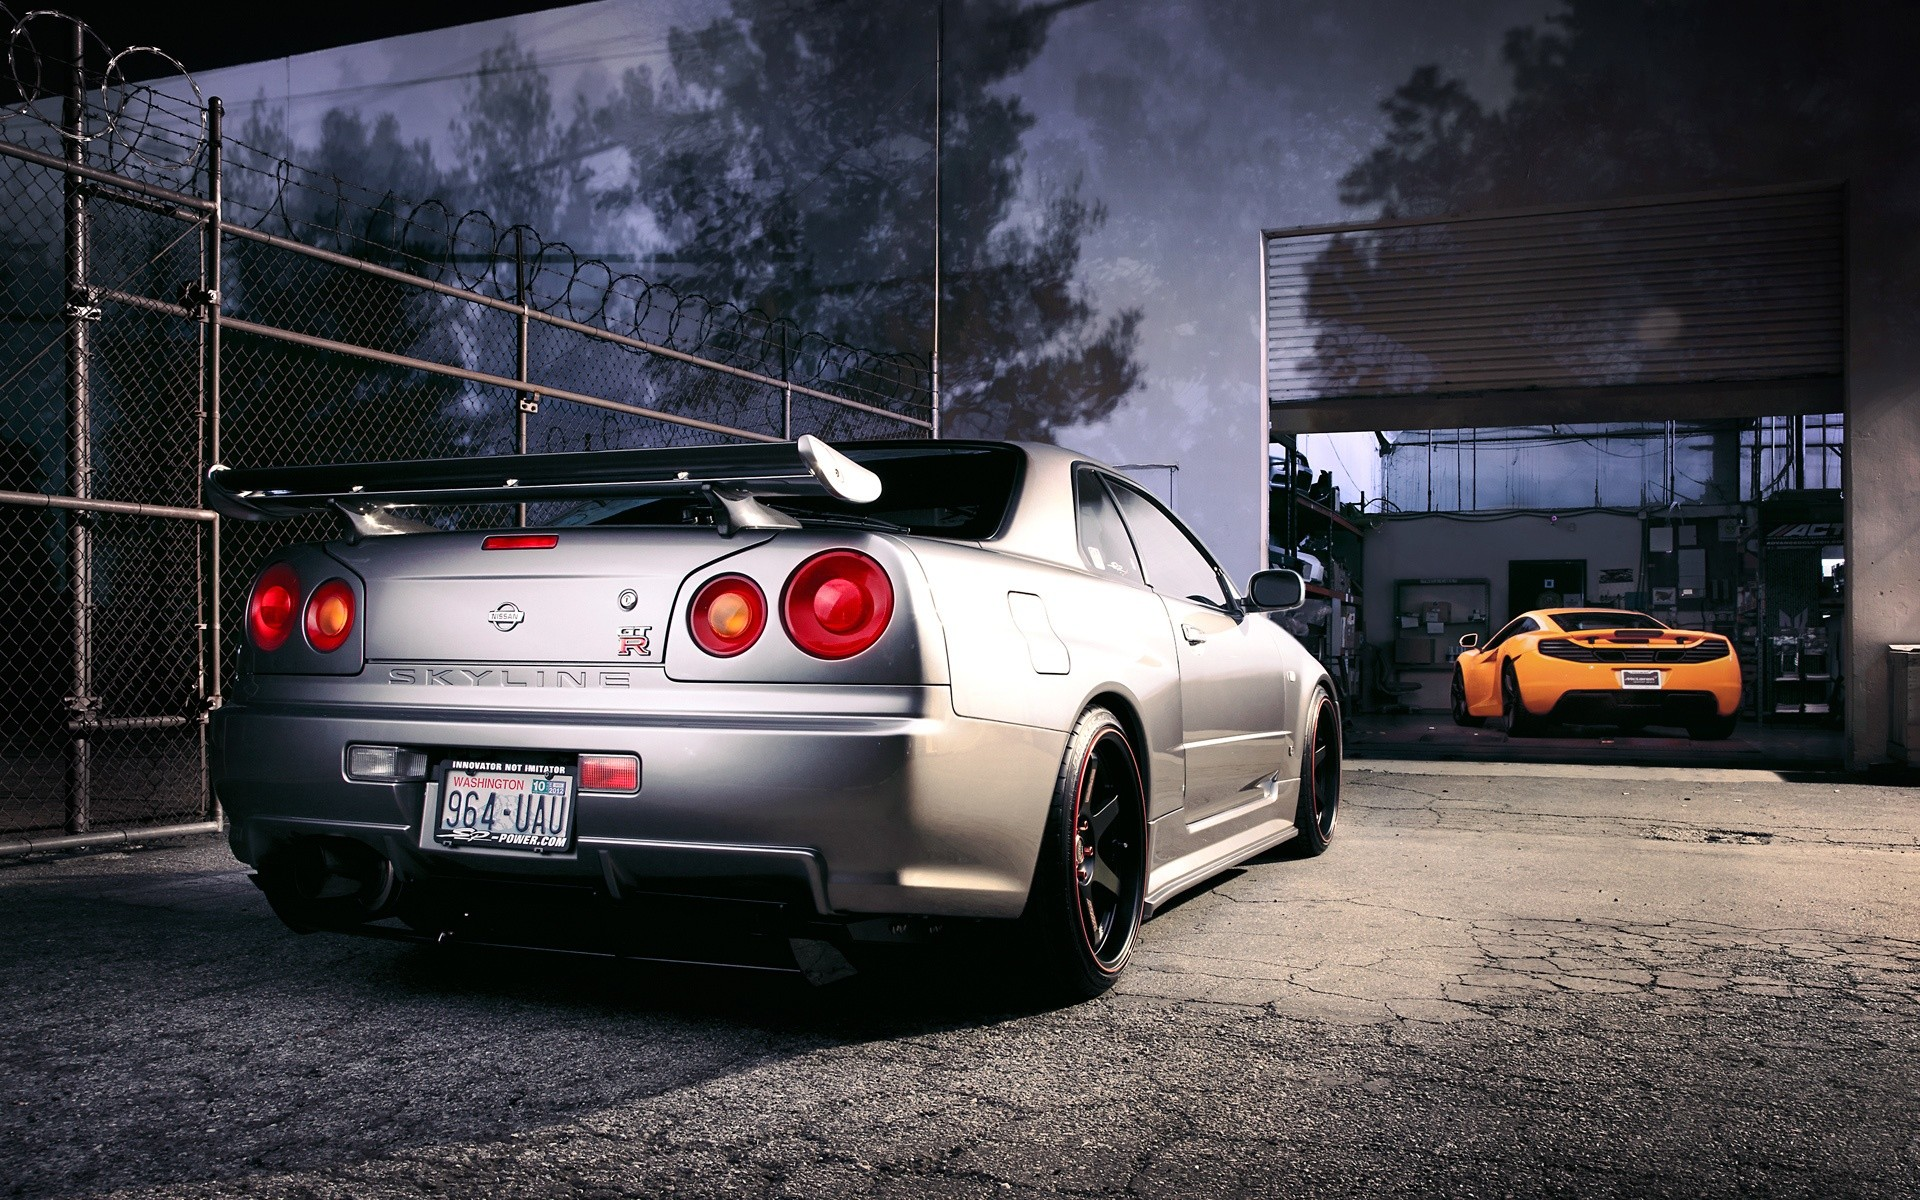 1920x1200 Explore Nissan R34, Nissan Gtr Skyline, and more!